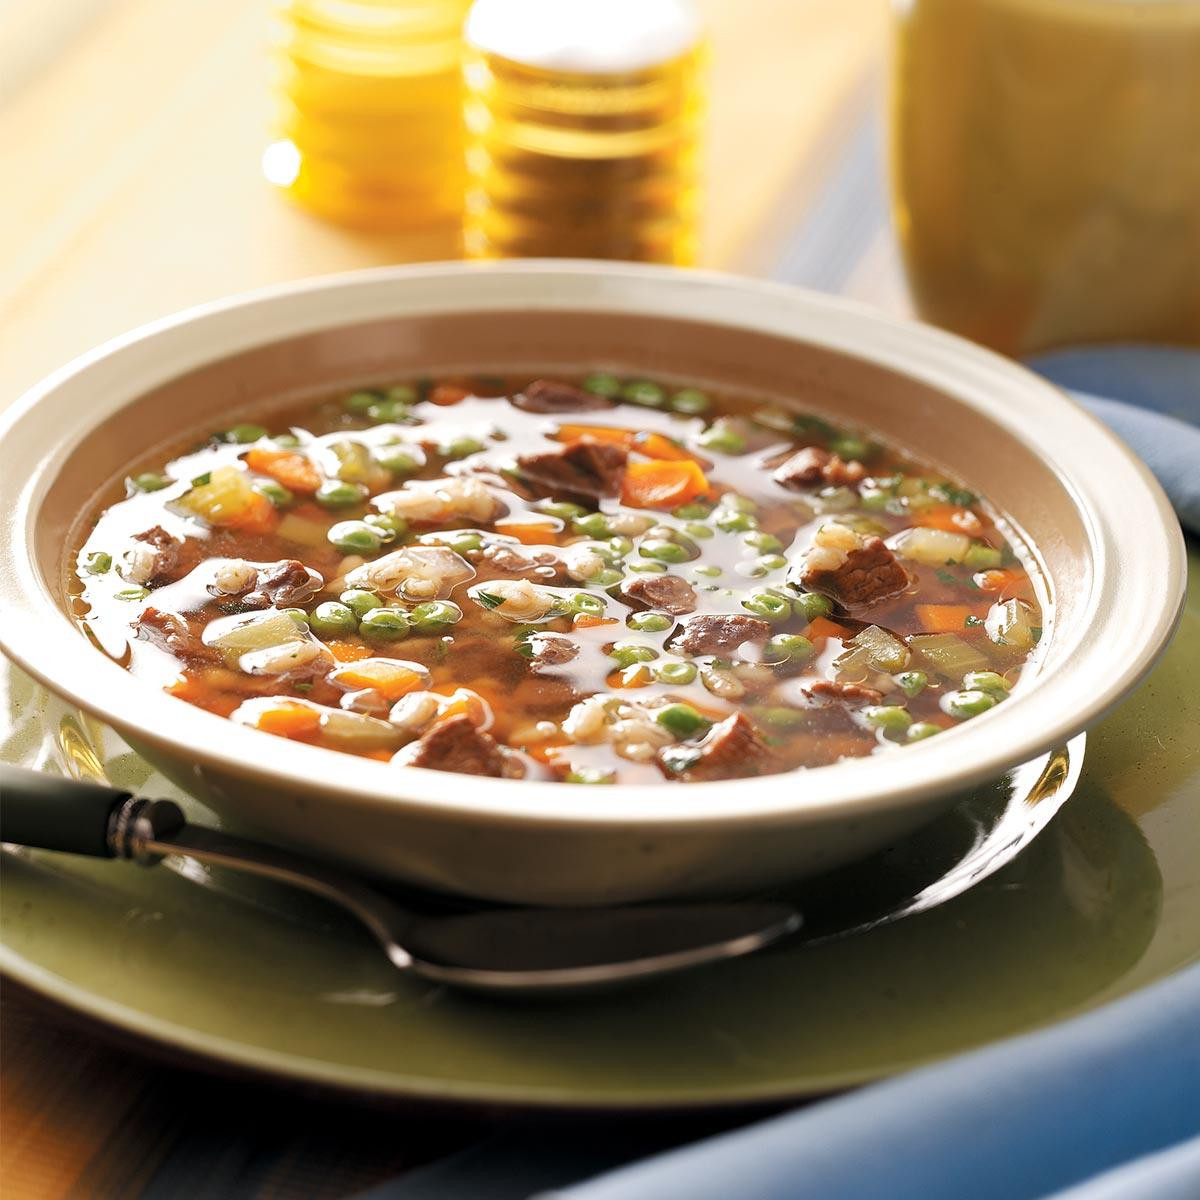 Beef And Barley Soup Recipe  Hearty Beef and Barley Soup Recipe